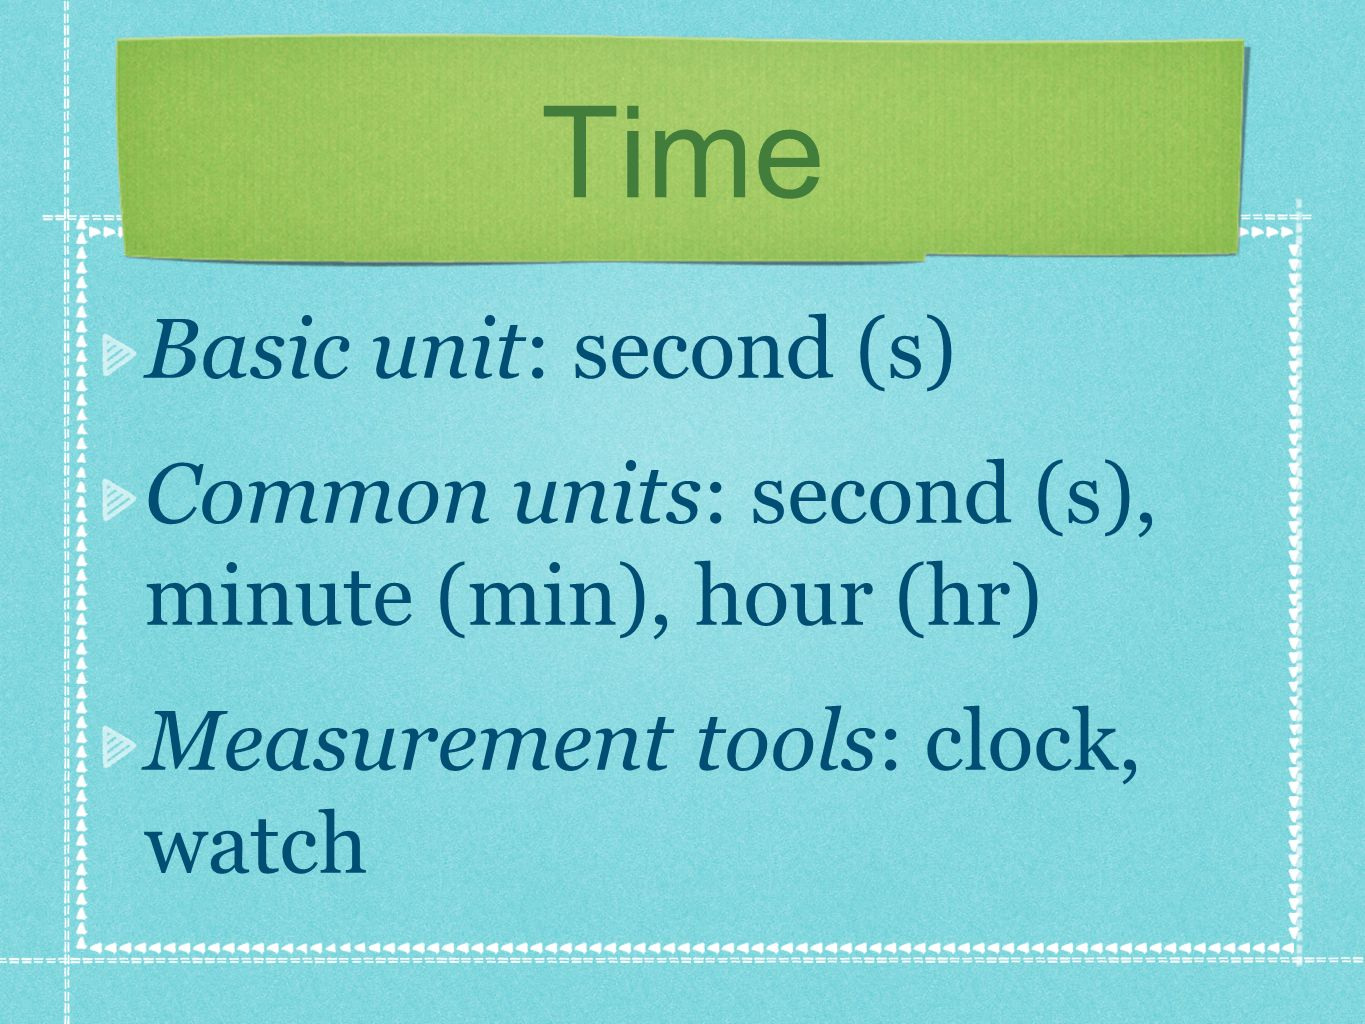 Time Basic unit: second (s) Common units: second (s), minute (min), hour (hr) Measurement tools: clock, watch